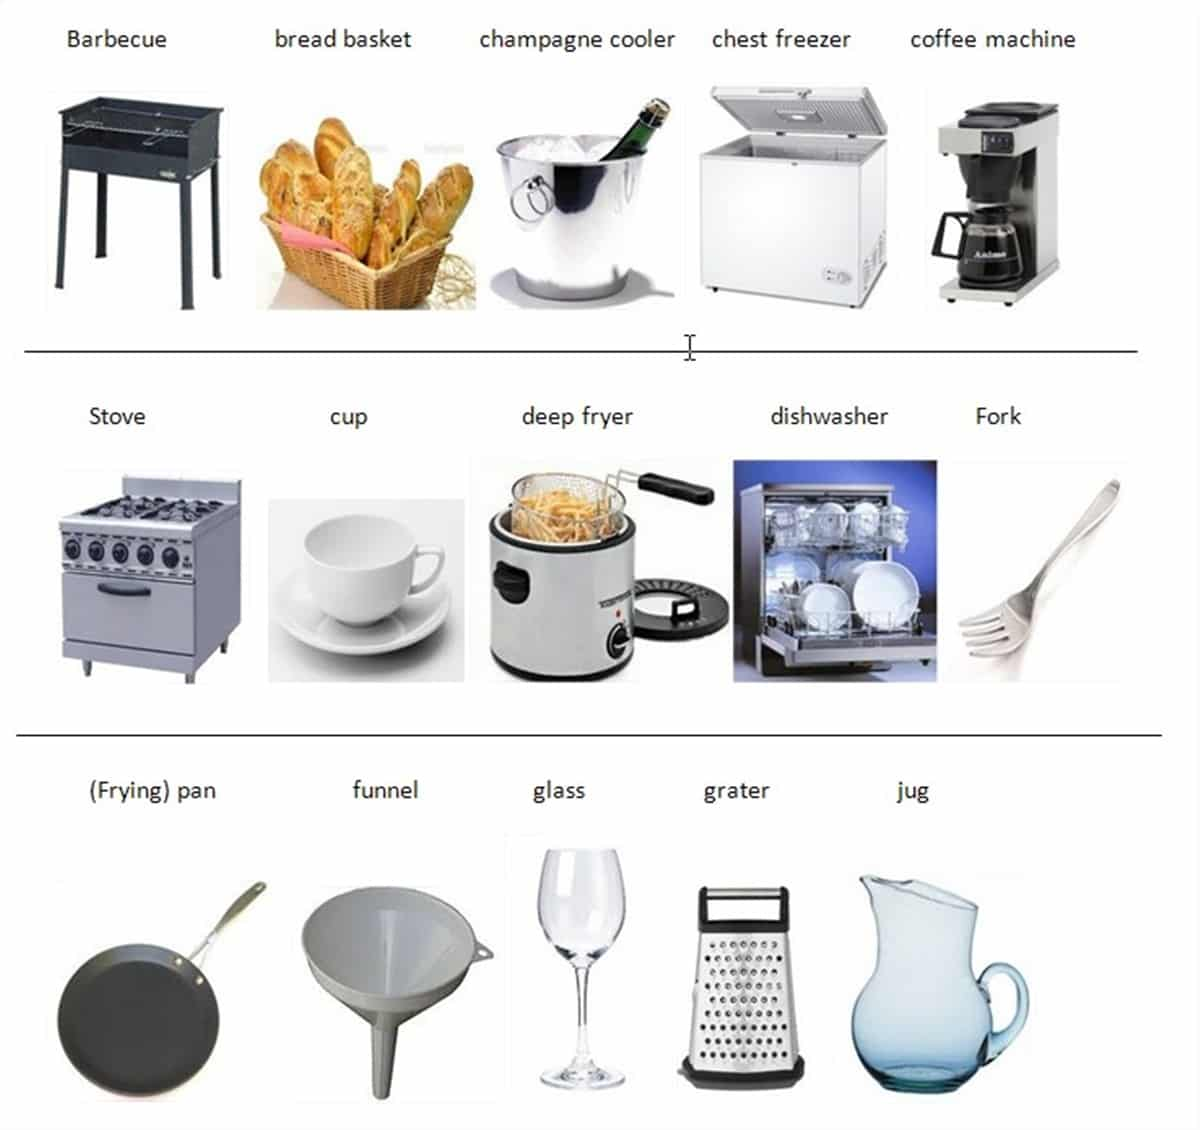 """""""In The Kitchen"""" Vocabulary: 200+ Objects Illustrated"""